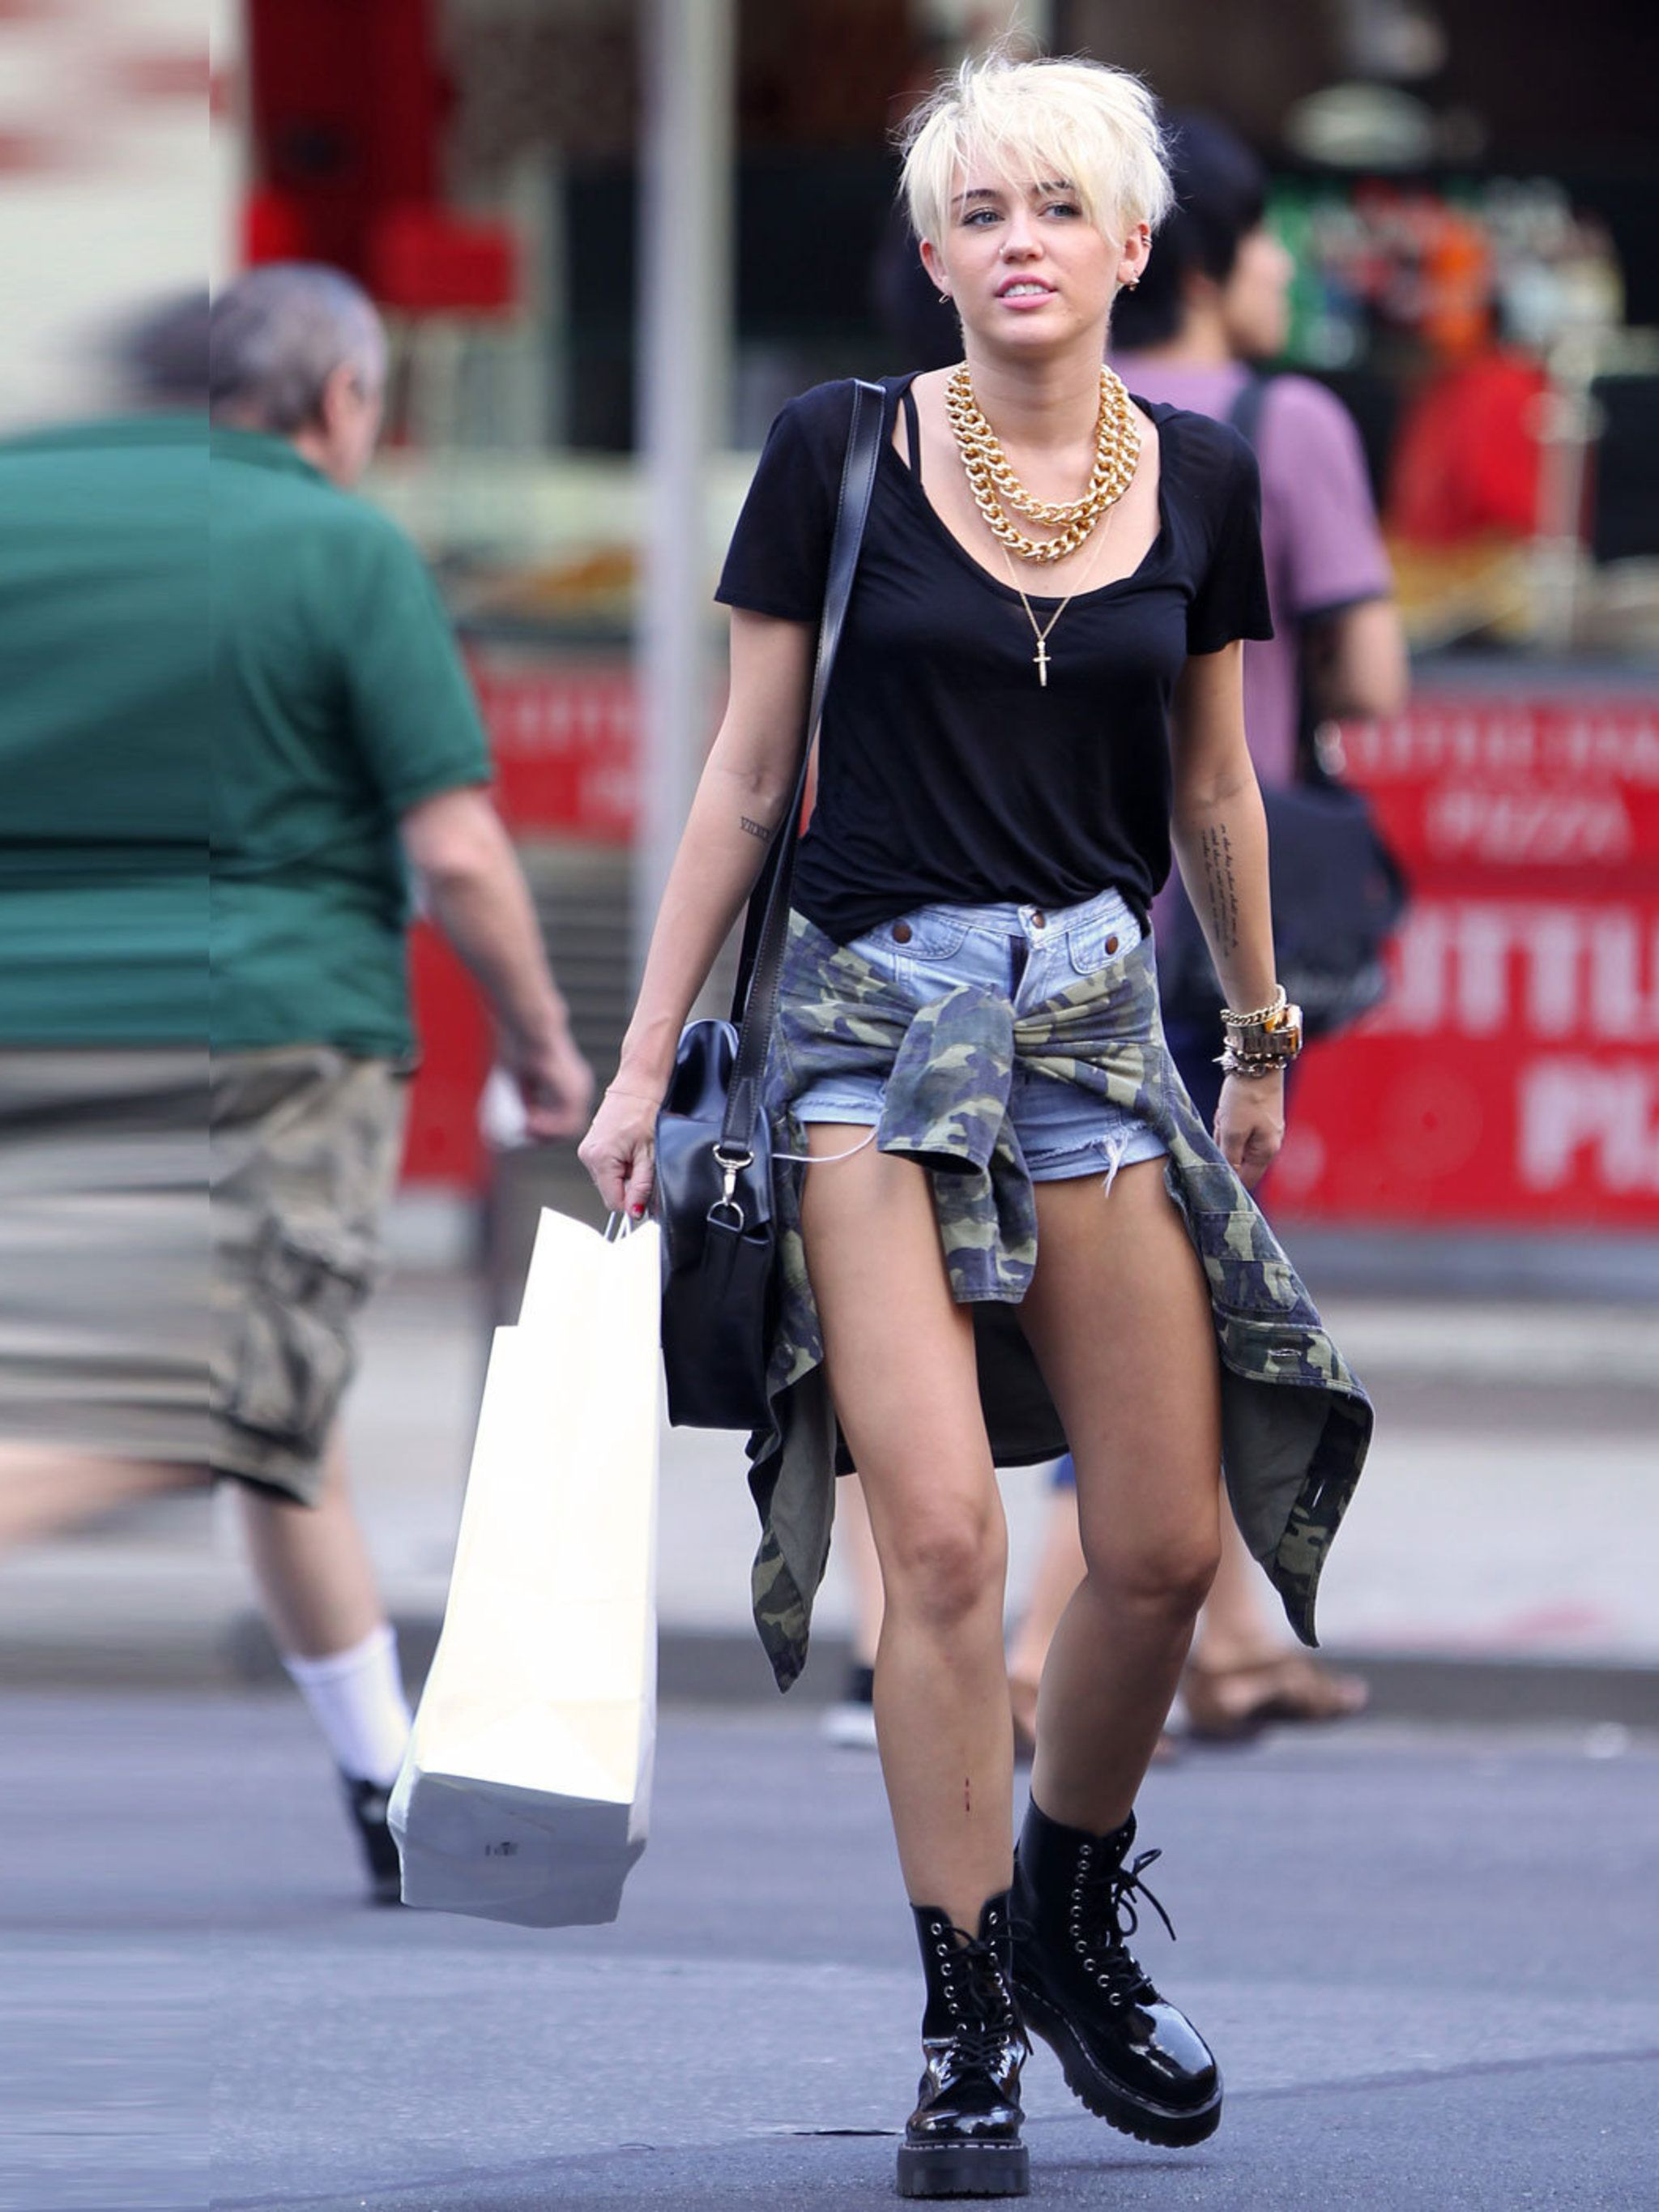 2019 year for women- Cyrus miley street style